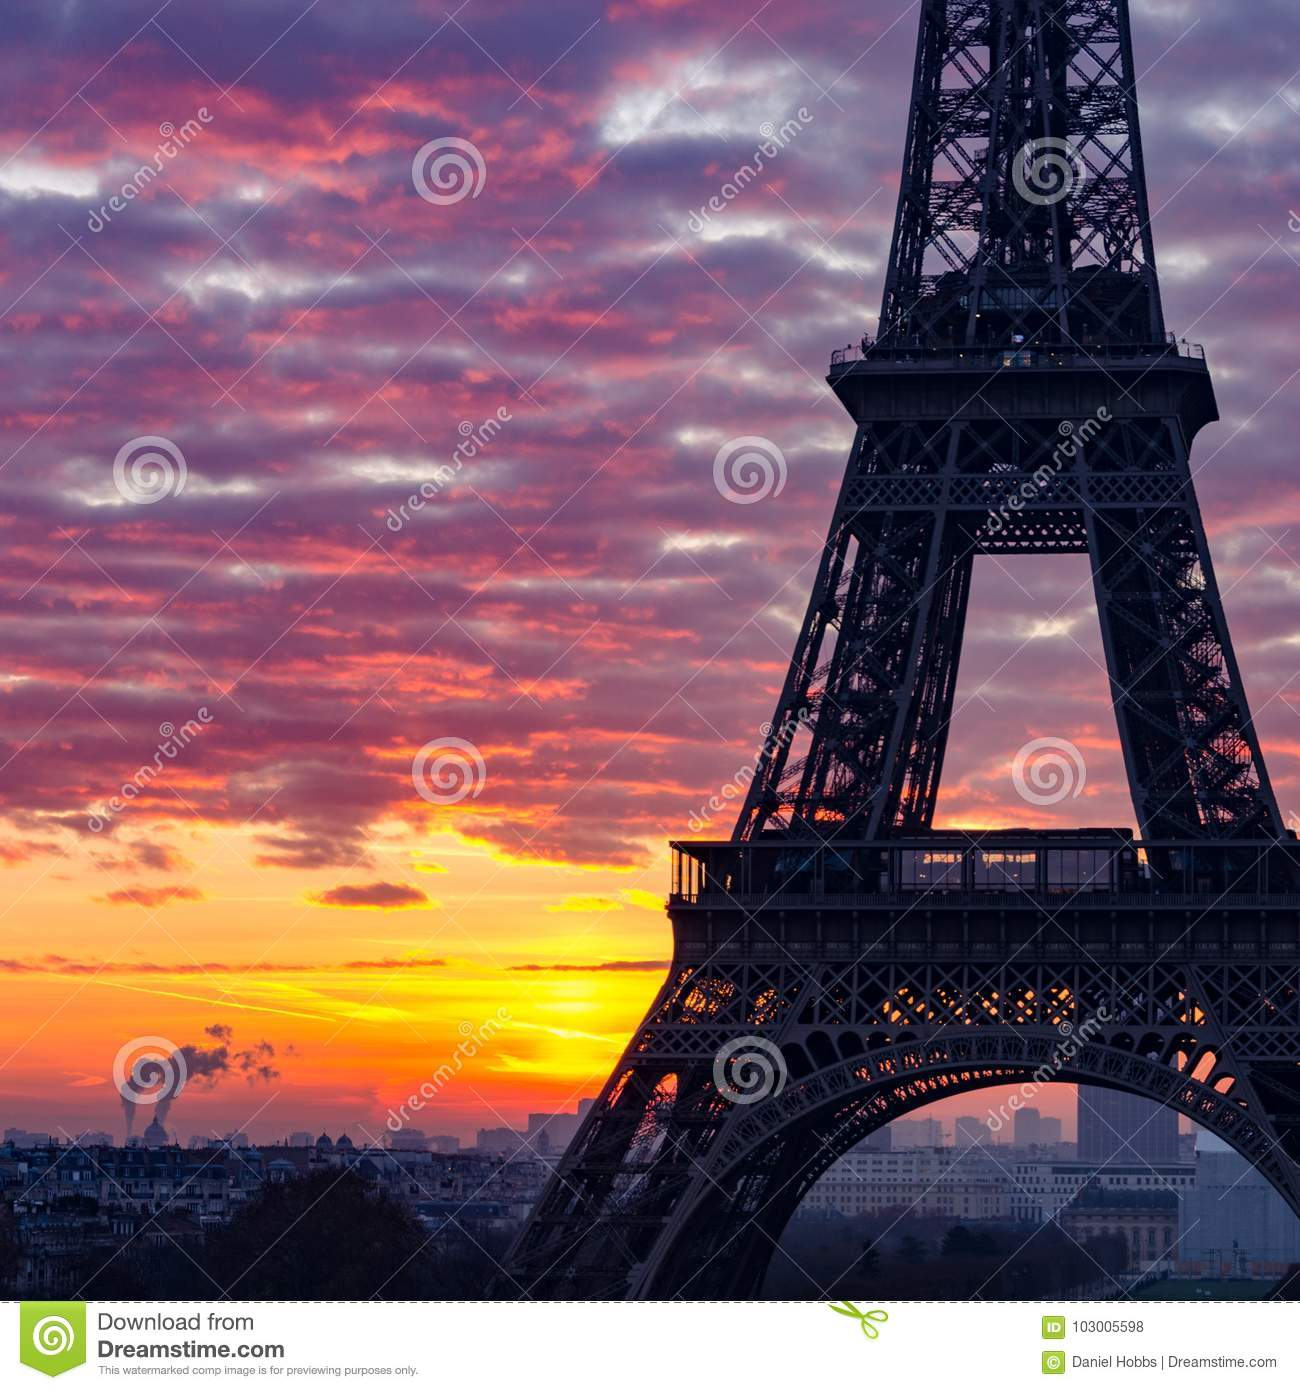 Close Up Silhouette Of The Eiffel Tower Paris During Sunrise Stock Photo Image Of Dawn Closeup 103005598